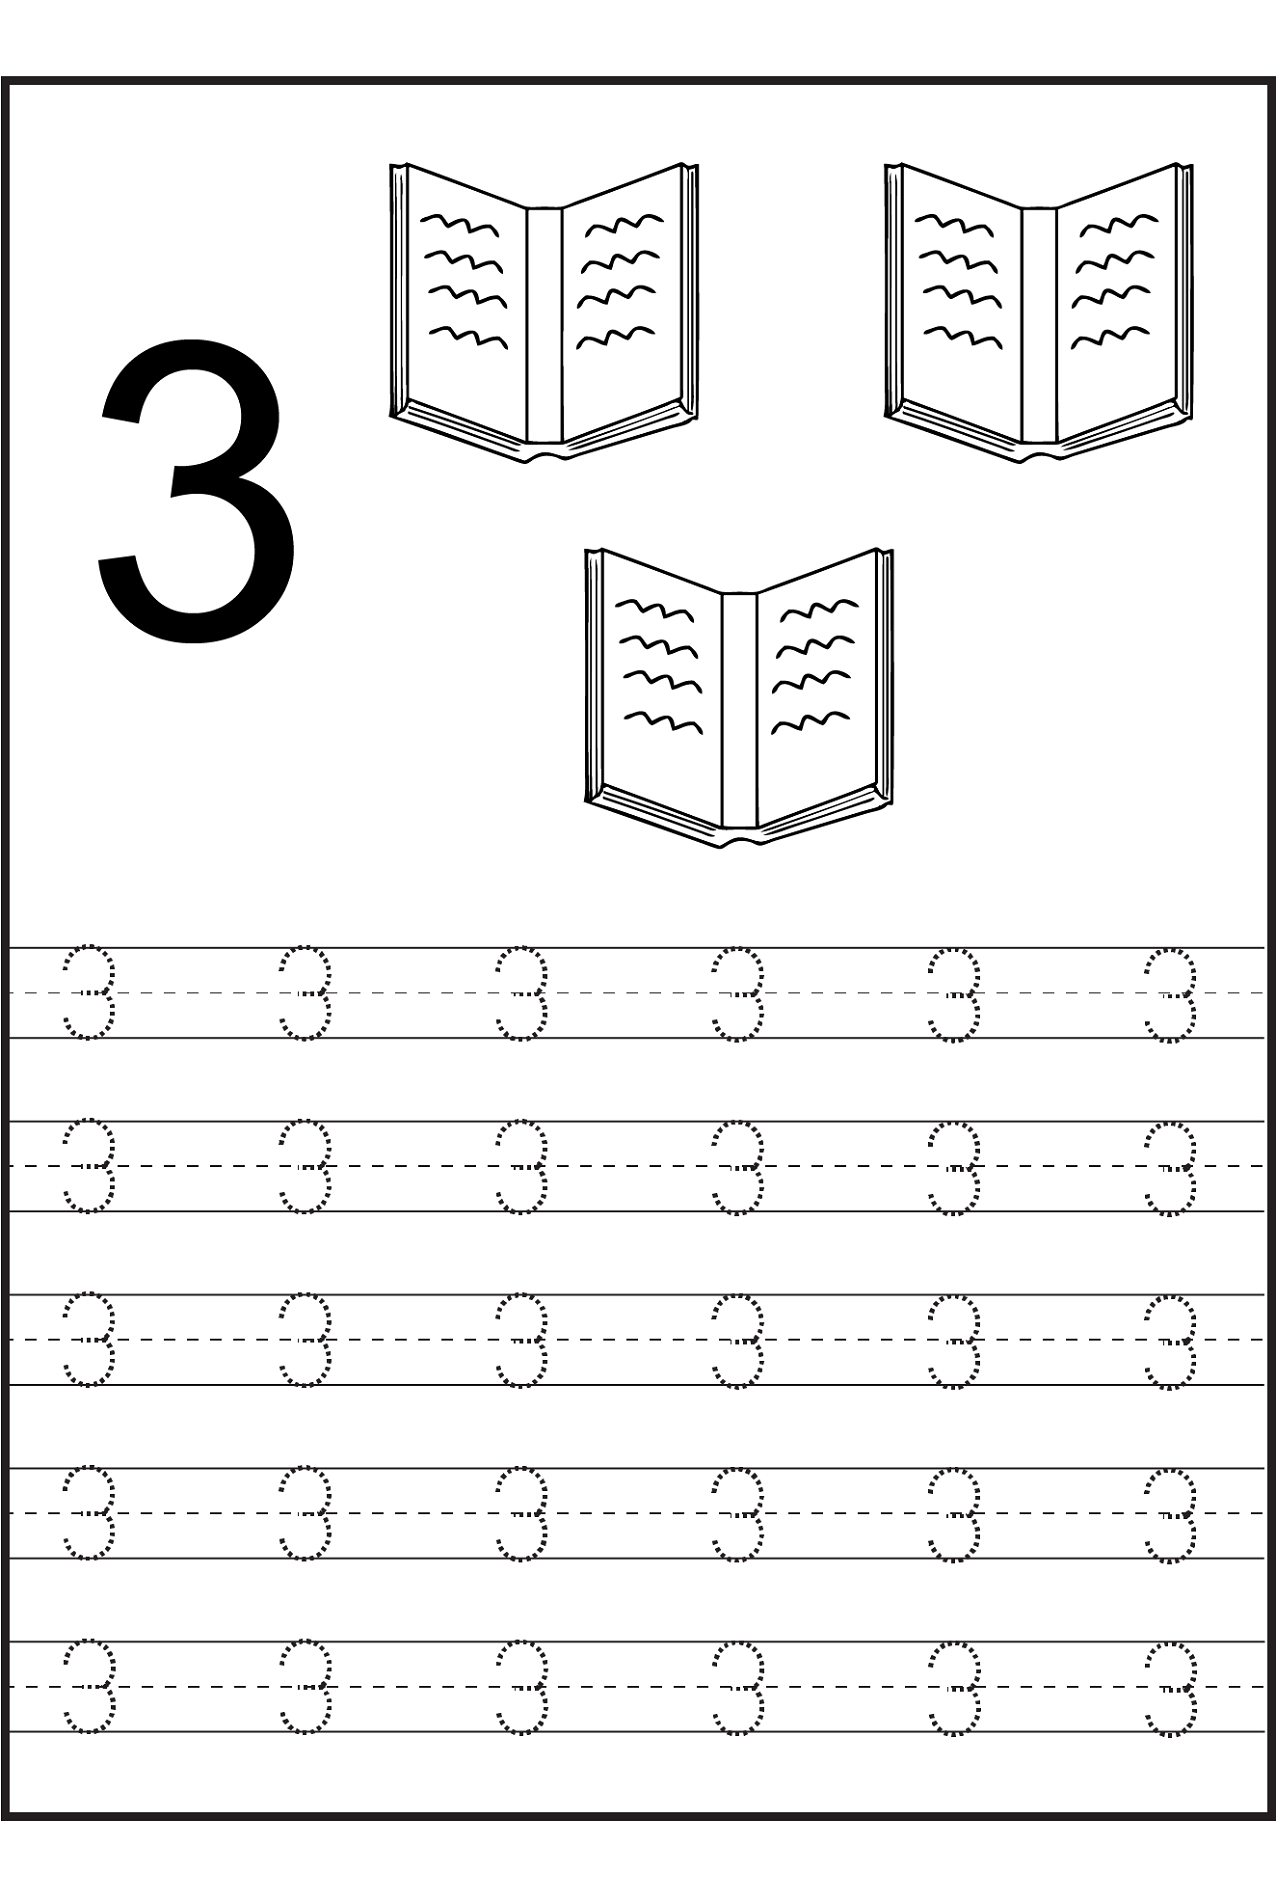 Free Printable Worksheets : Free number worksheets printable activity shelter